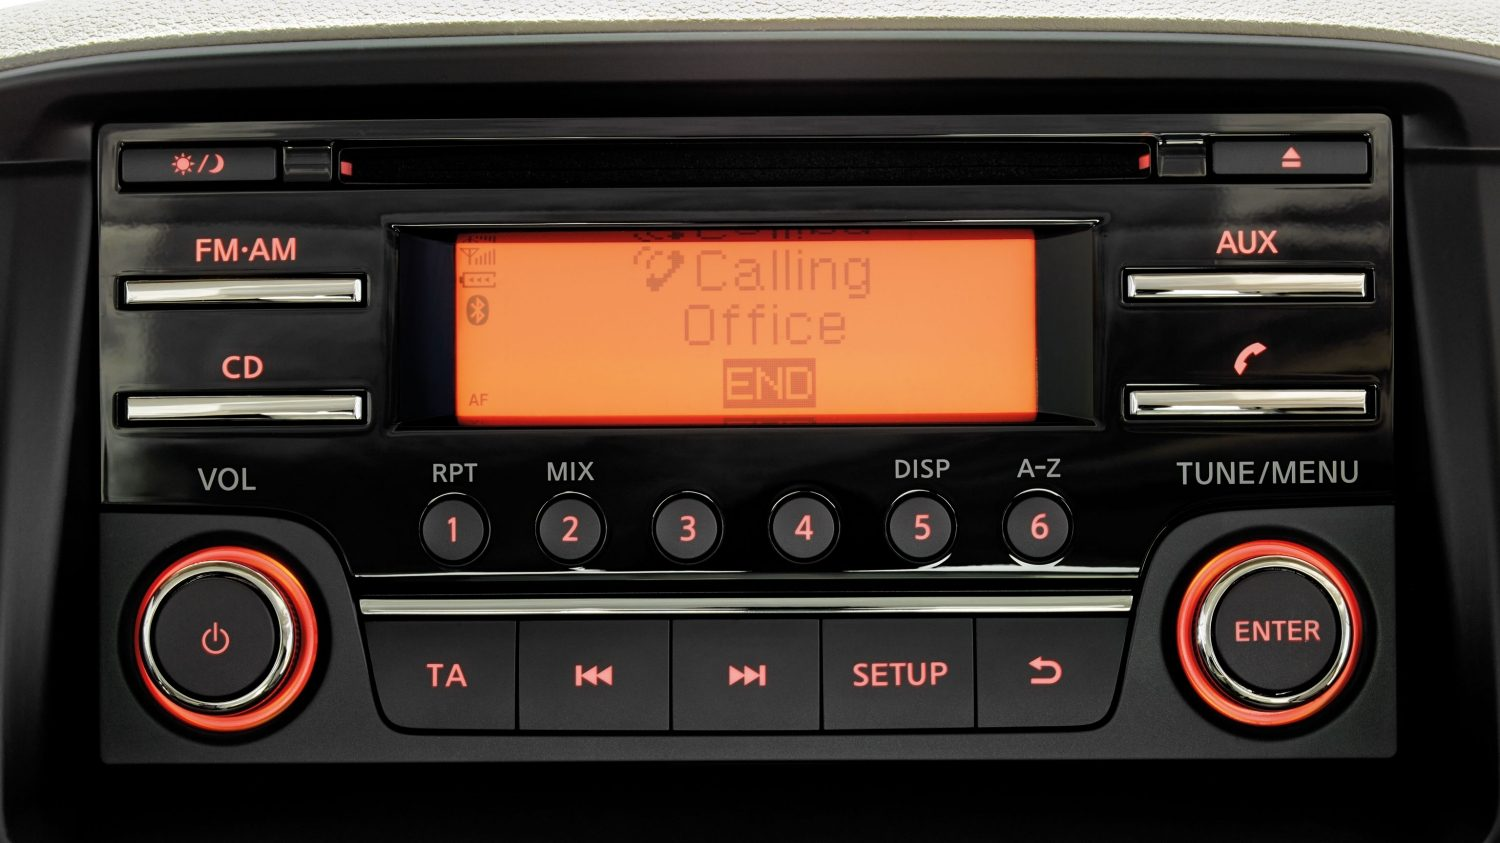 Nissan NT400 - Bluetooth-radio/cd-system